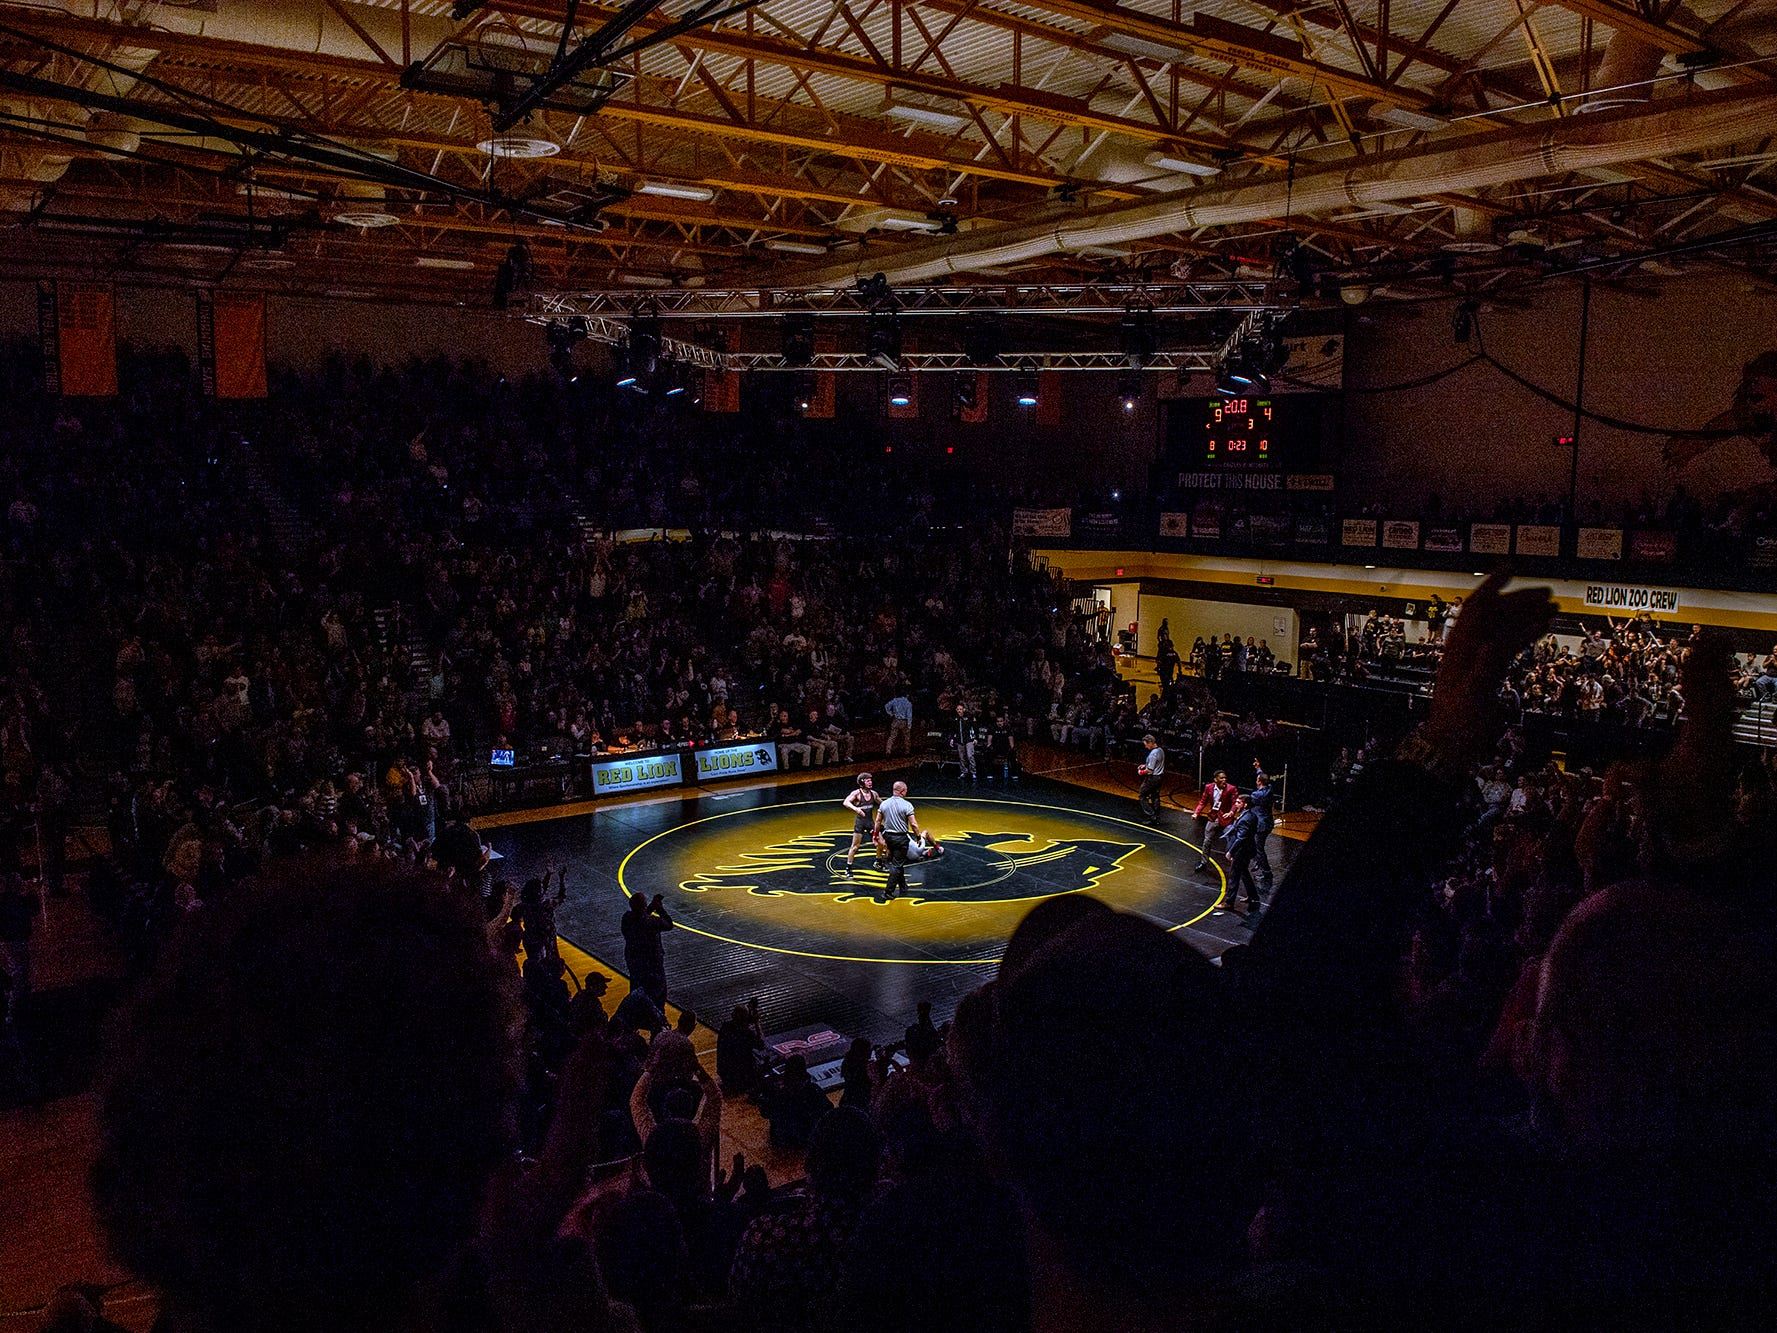 Fans erupt as Lock Haven's Luke Werner celebrates after pinning Arizona State's Brandon Courtney at Red Lion's Fitzkee Athletic Center on Friday, Jan. 25, 2019. The pin helped Werner's No. 22 Lock Haven Bald Eagles upset No. 12 Arizona State, 23-14, in the first ever 'Rumble in the Jungle.'